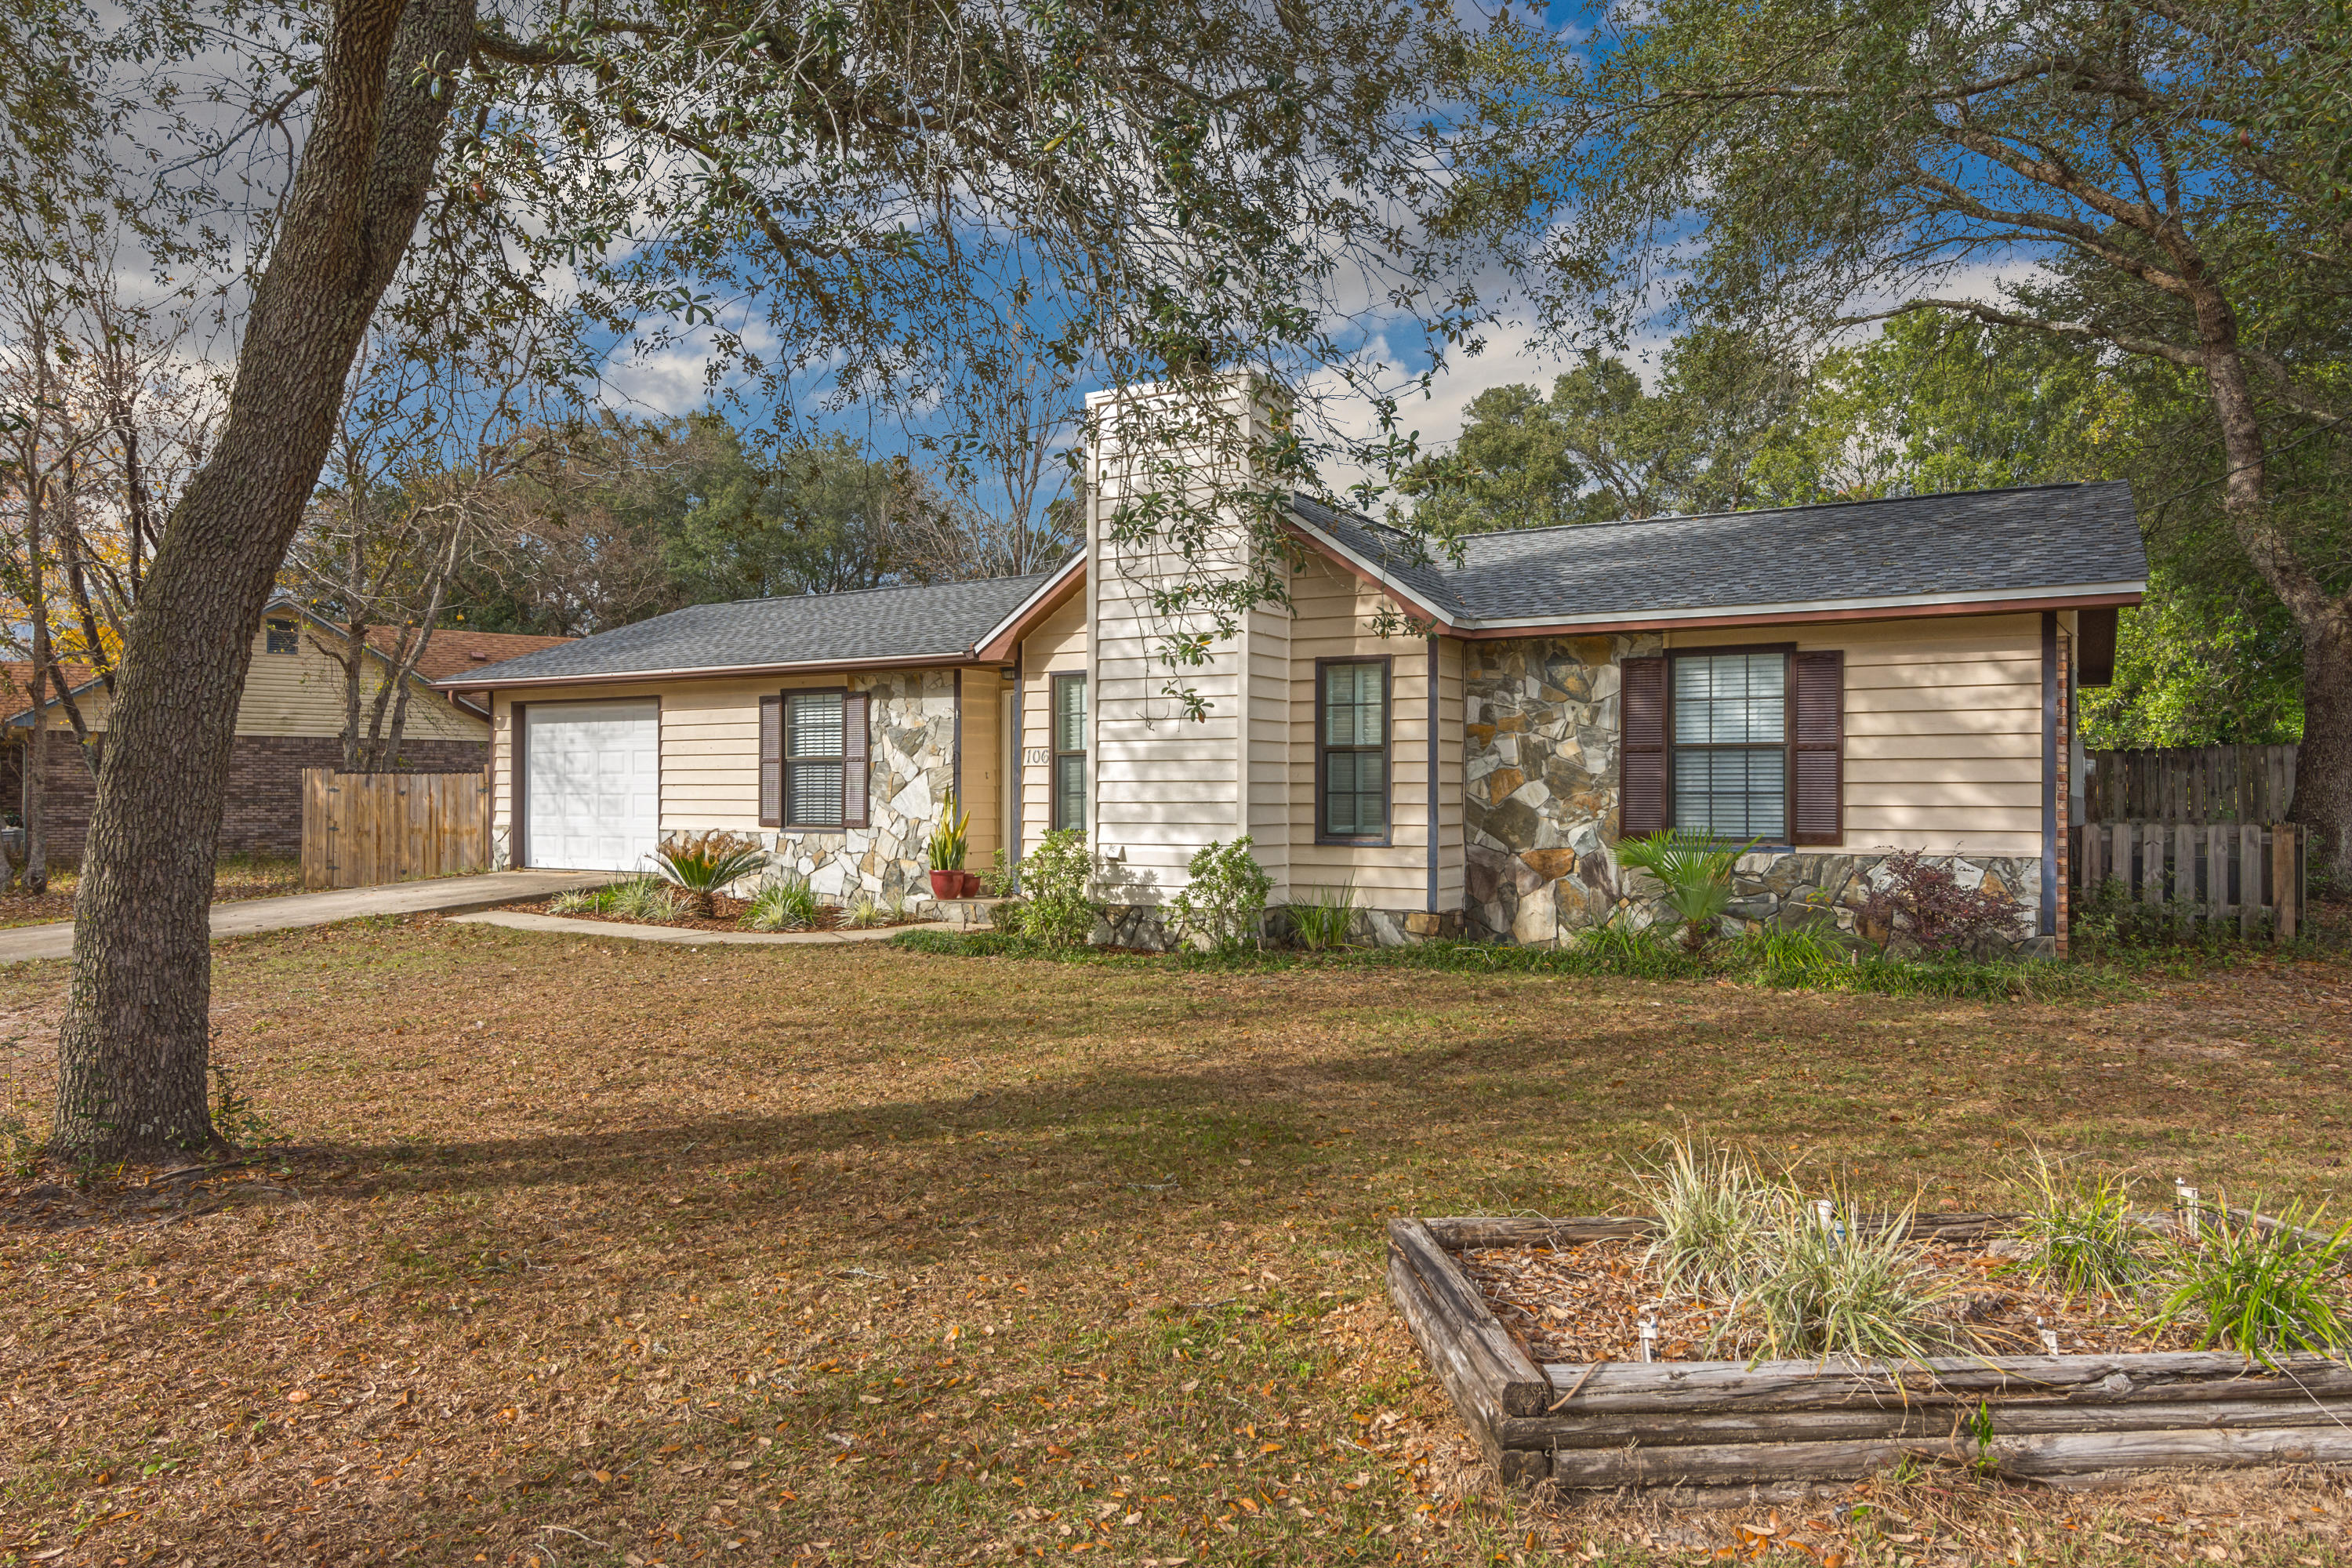 Photo of home for sale at 106 Edna, Crestview FL